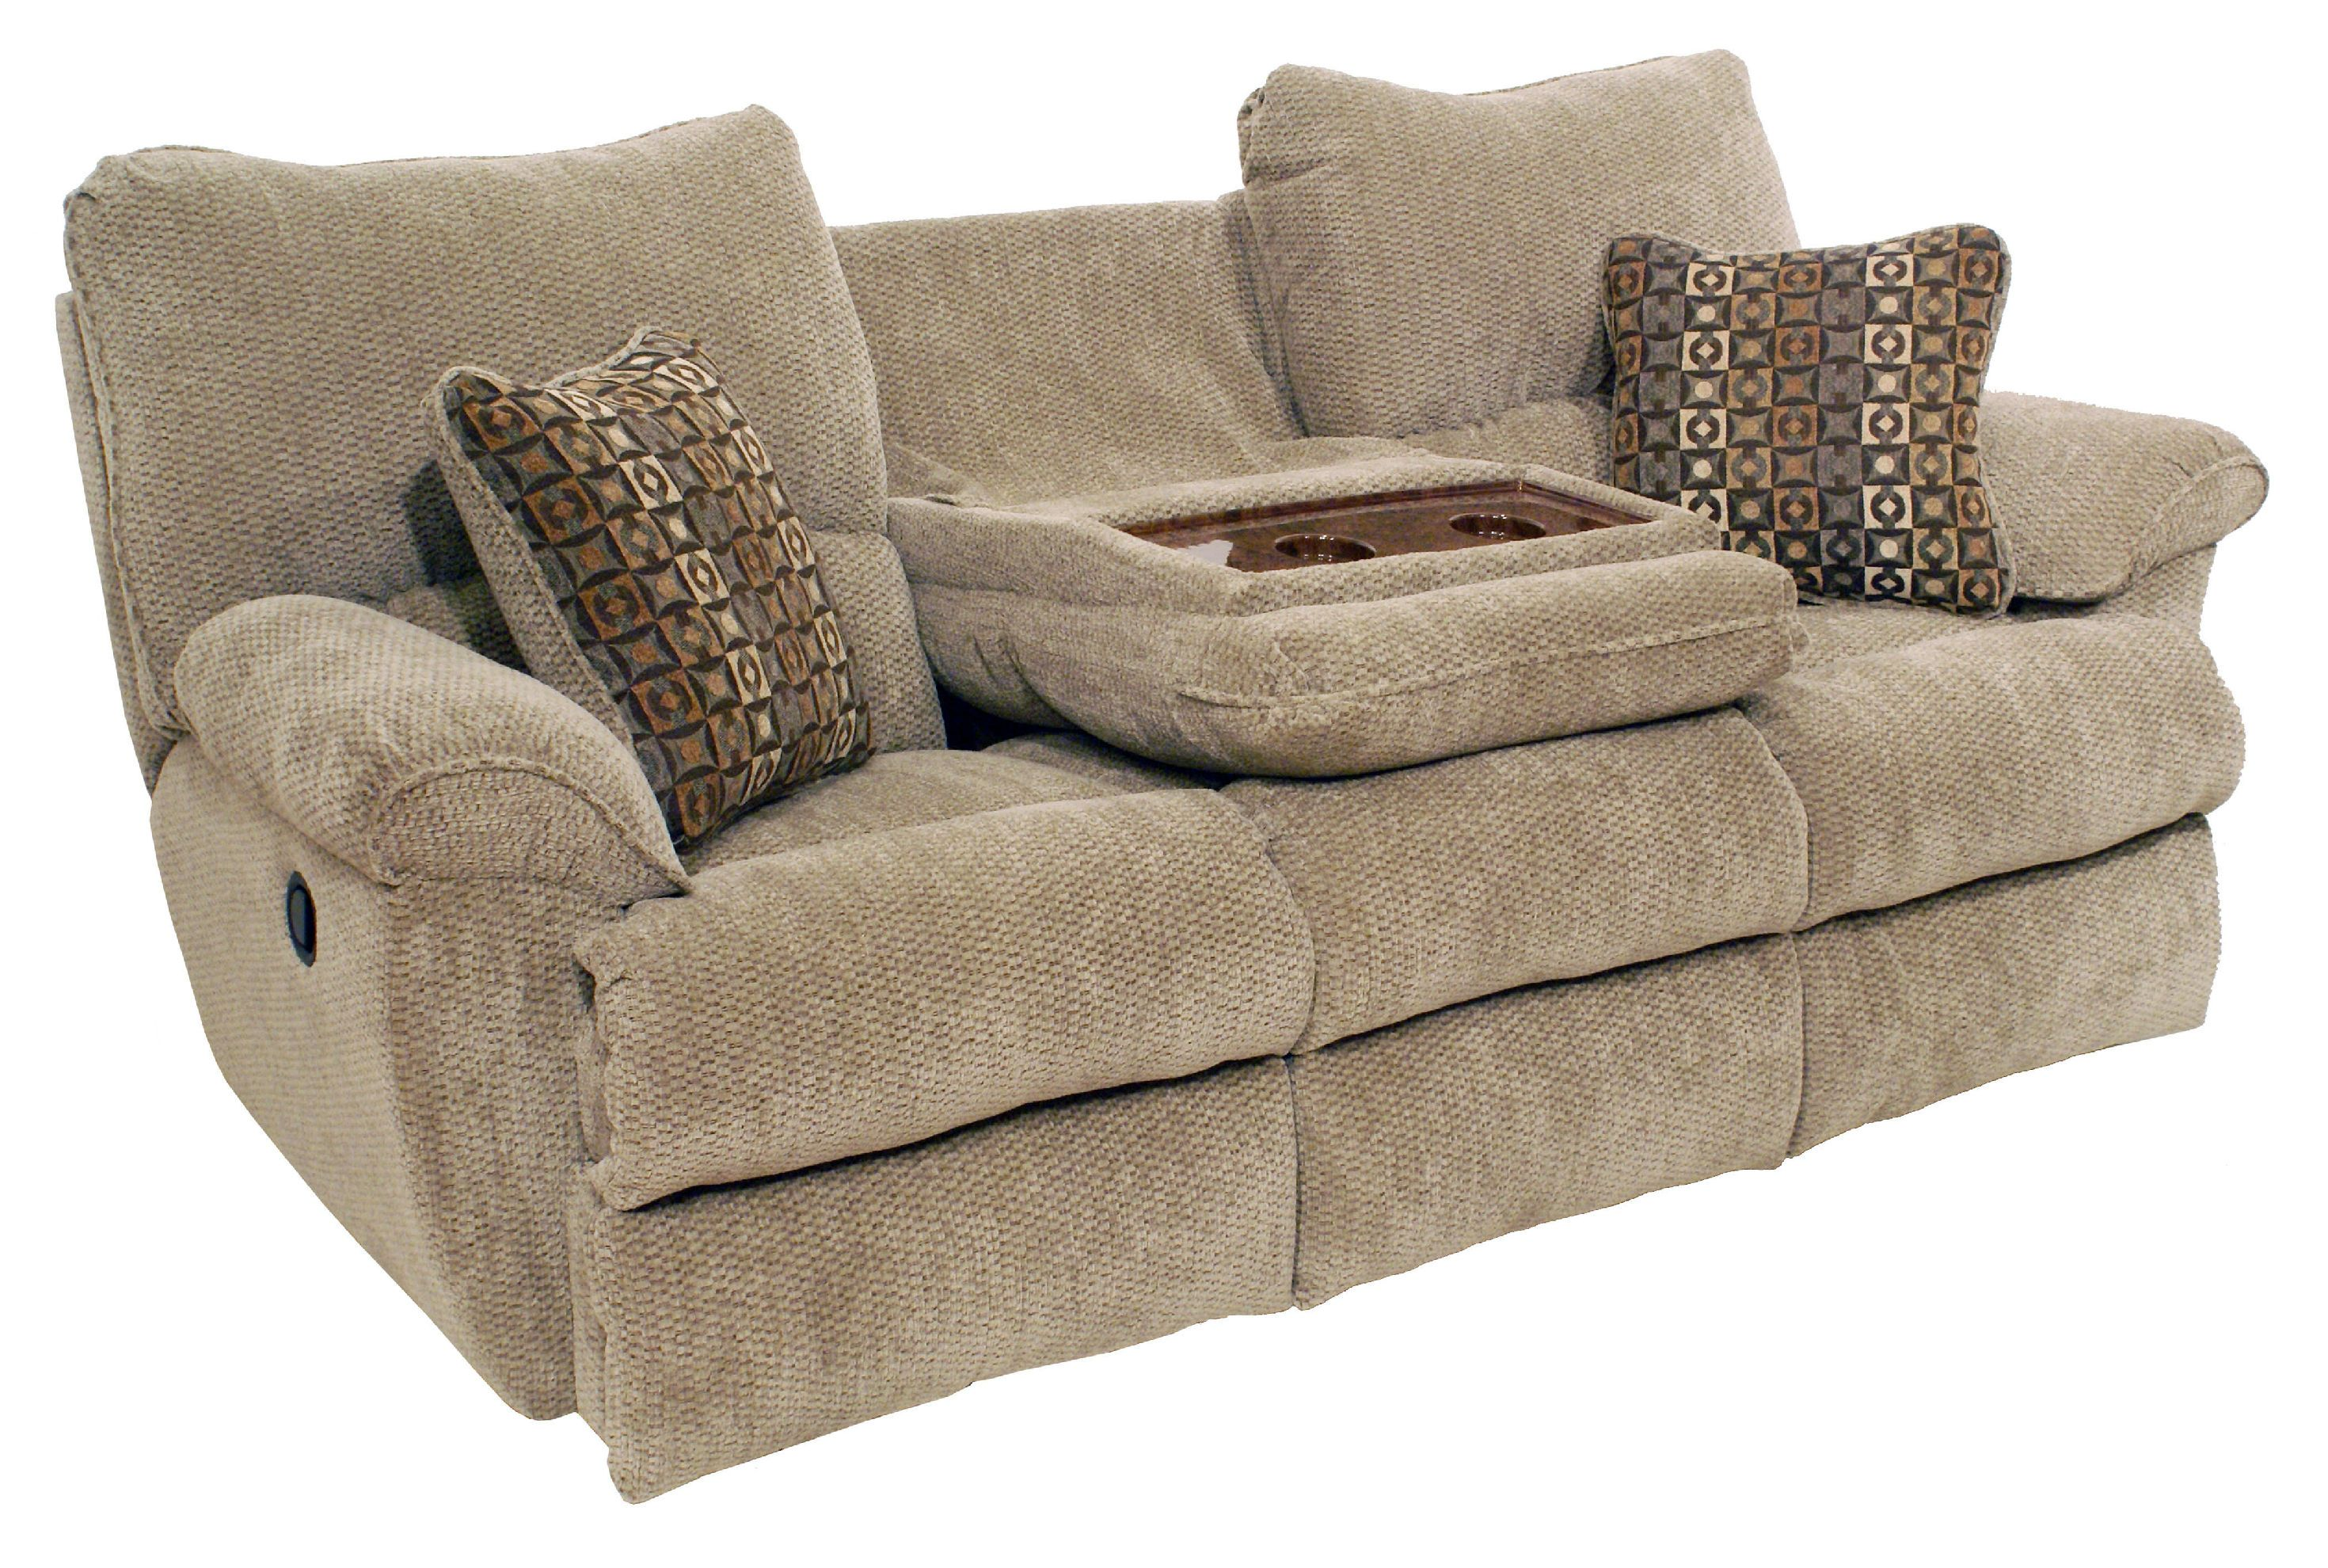 chicago catnapper reclining recliner impulse set manufacturers leather of sets chateau furniture flexsteel best bonded and sofa medium reviews size sofas